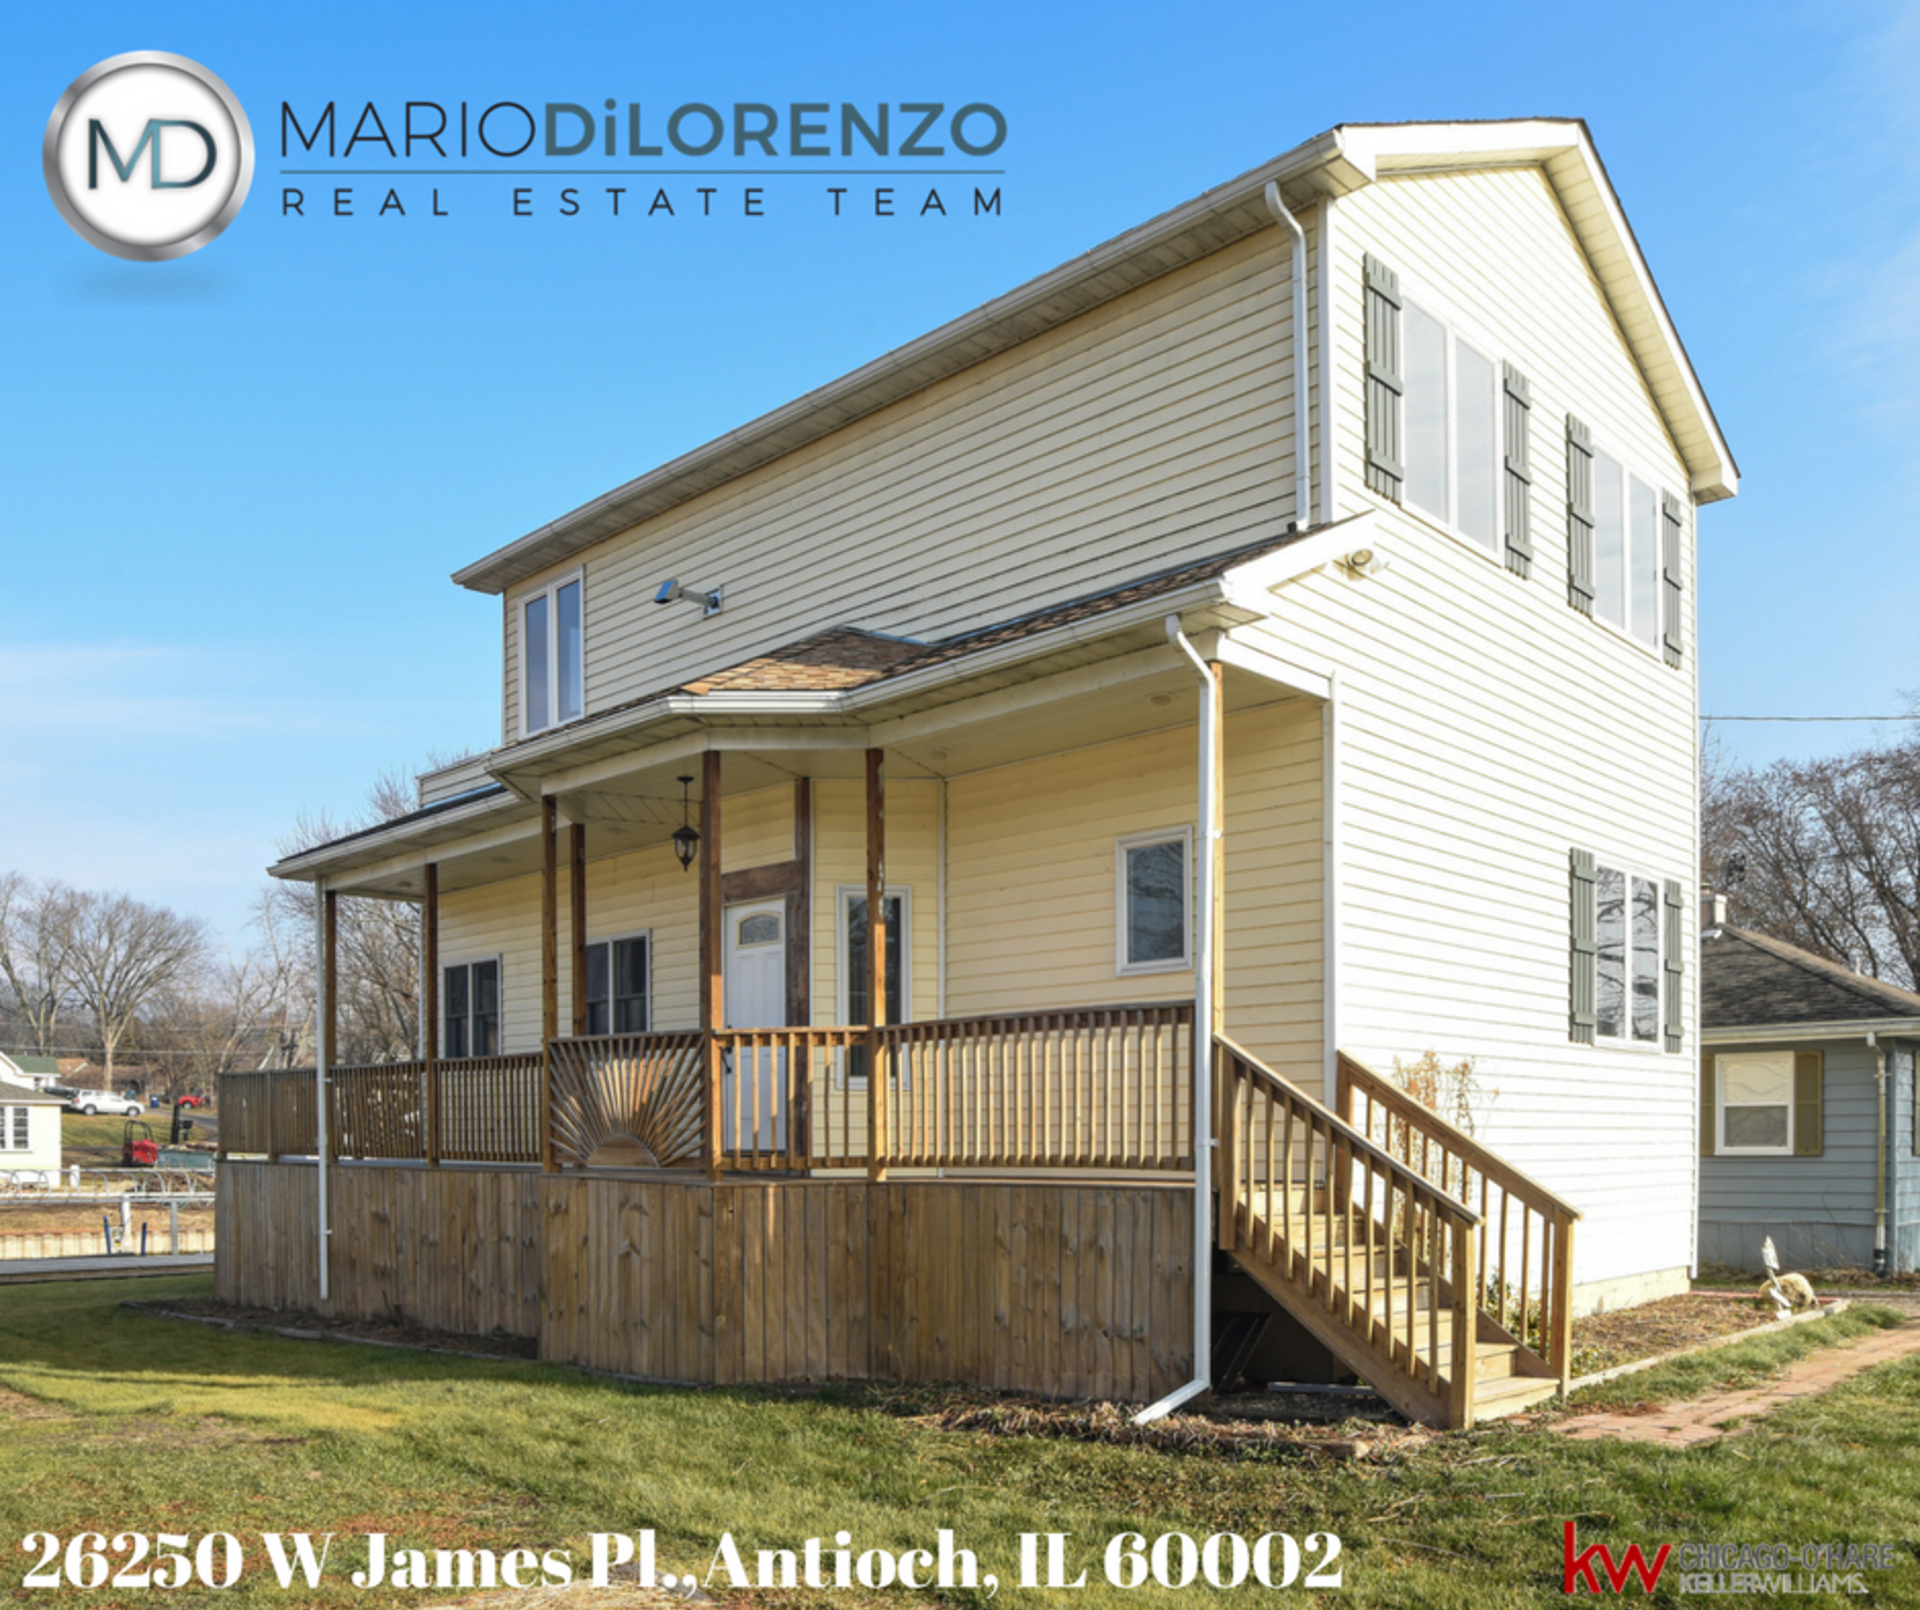 Open house, january 7, 2018 from 1-3pm, 26250 W. James Pl., Antioch il 60002